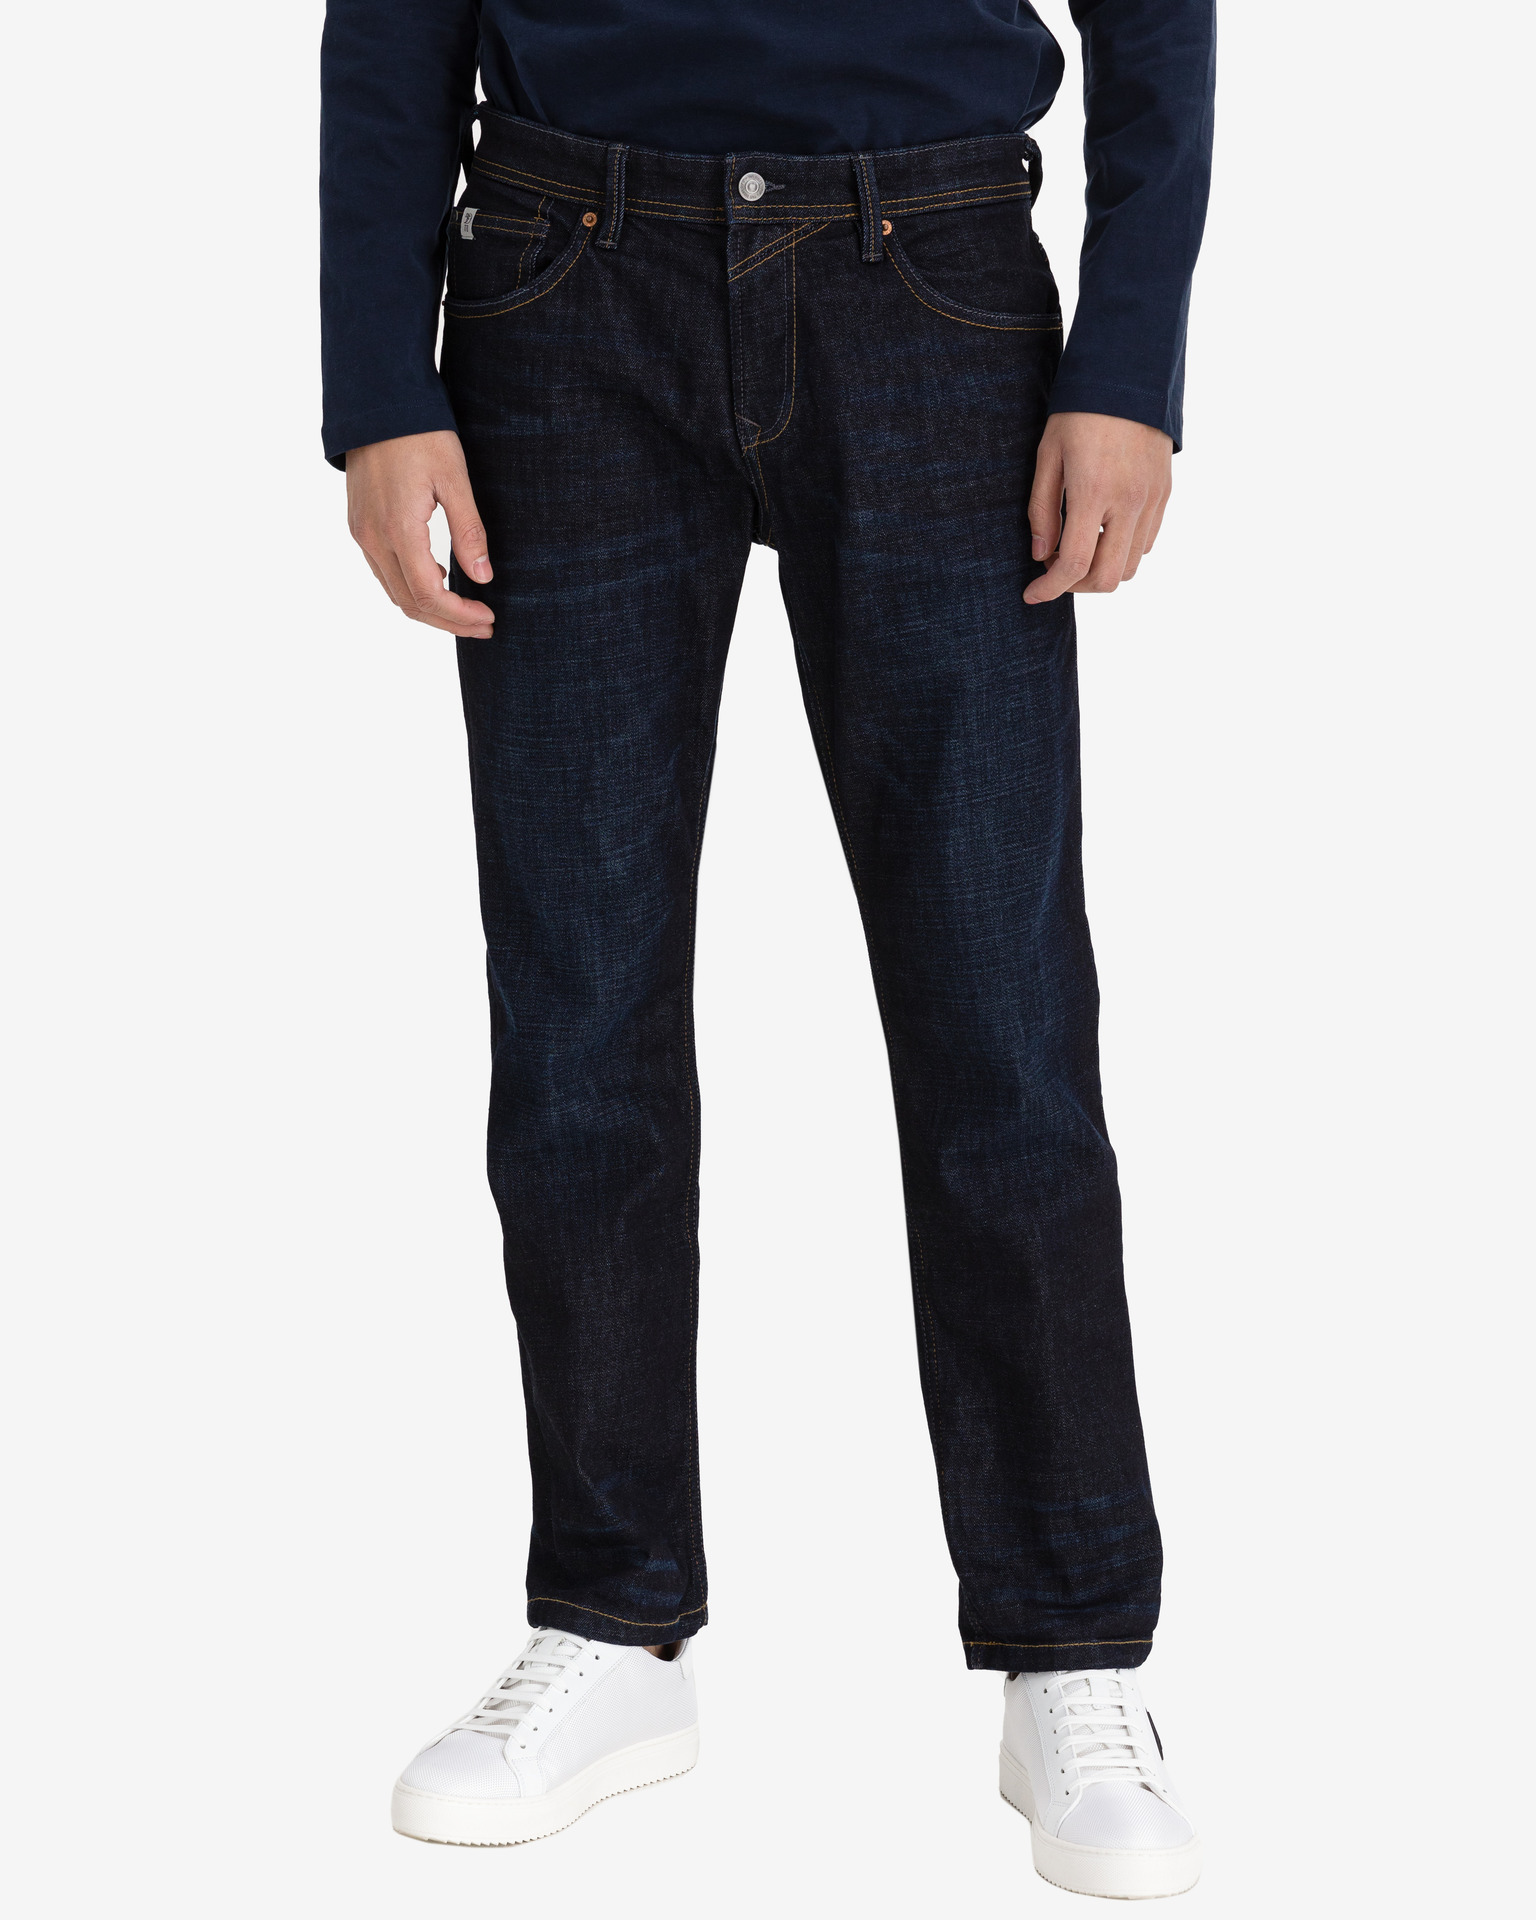 Aedan Jeans Tom Tailor Denim